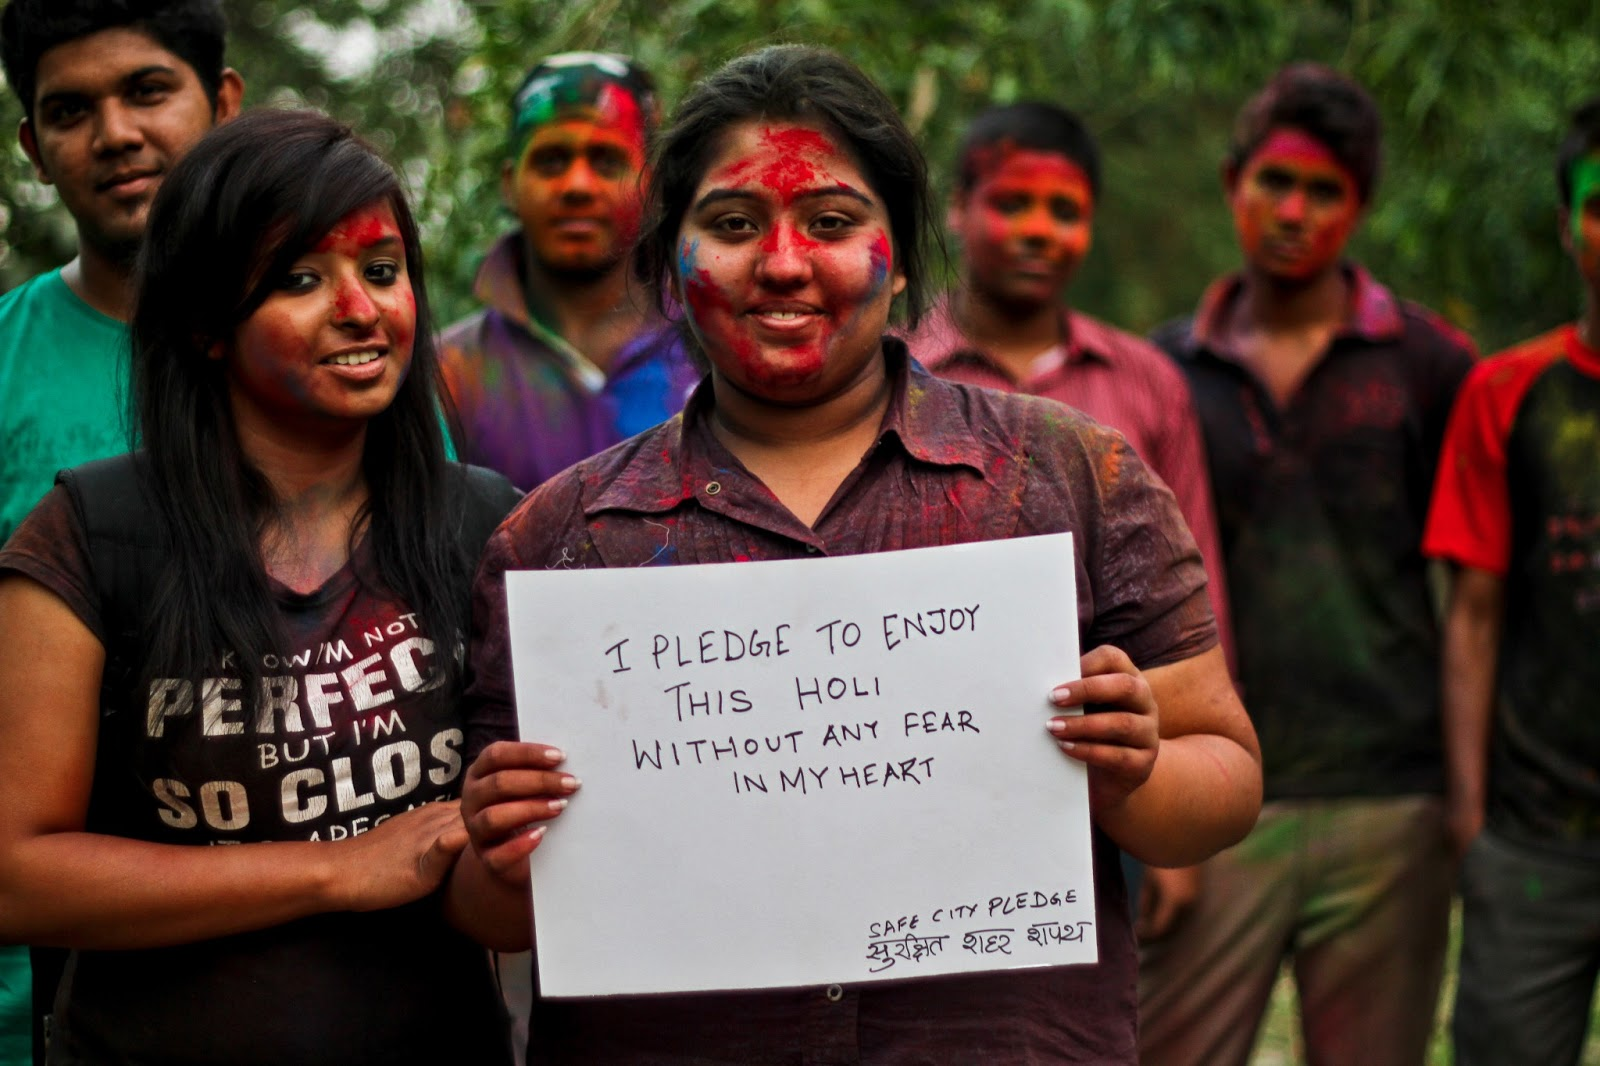 This Is How Eve Teasing Remained The Darker Side Of Holi - A Bitter Truth 4